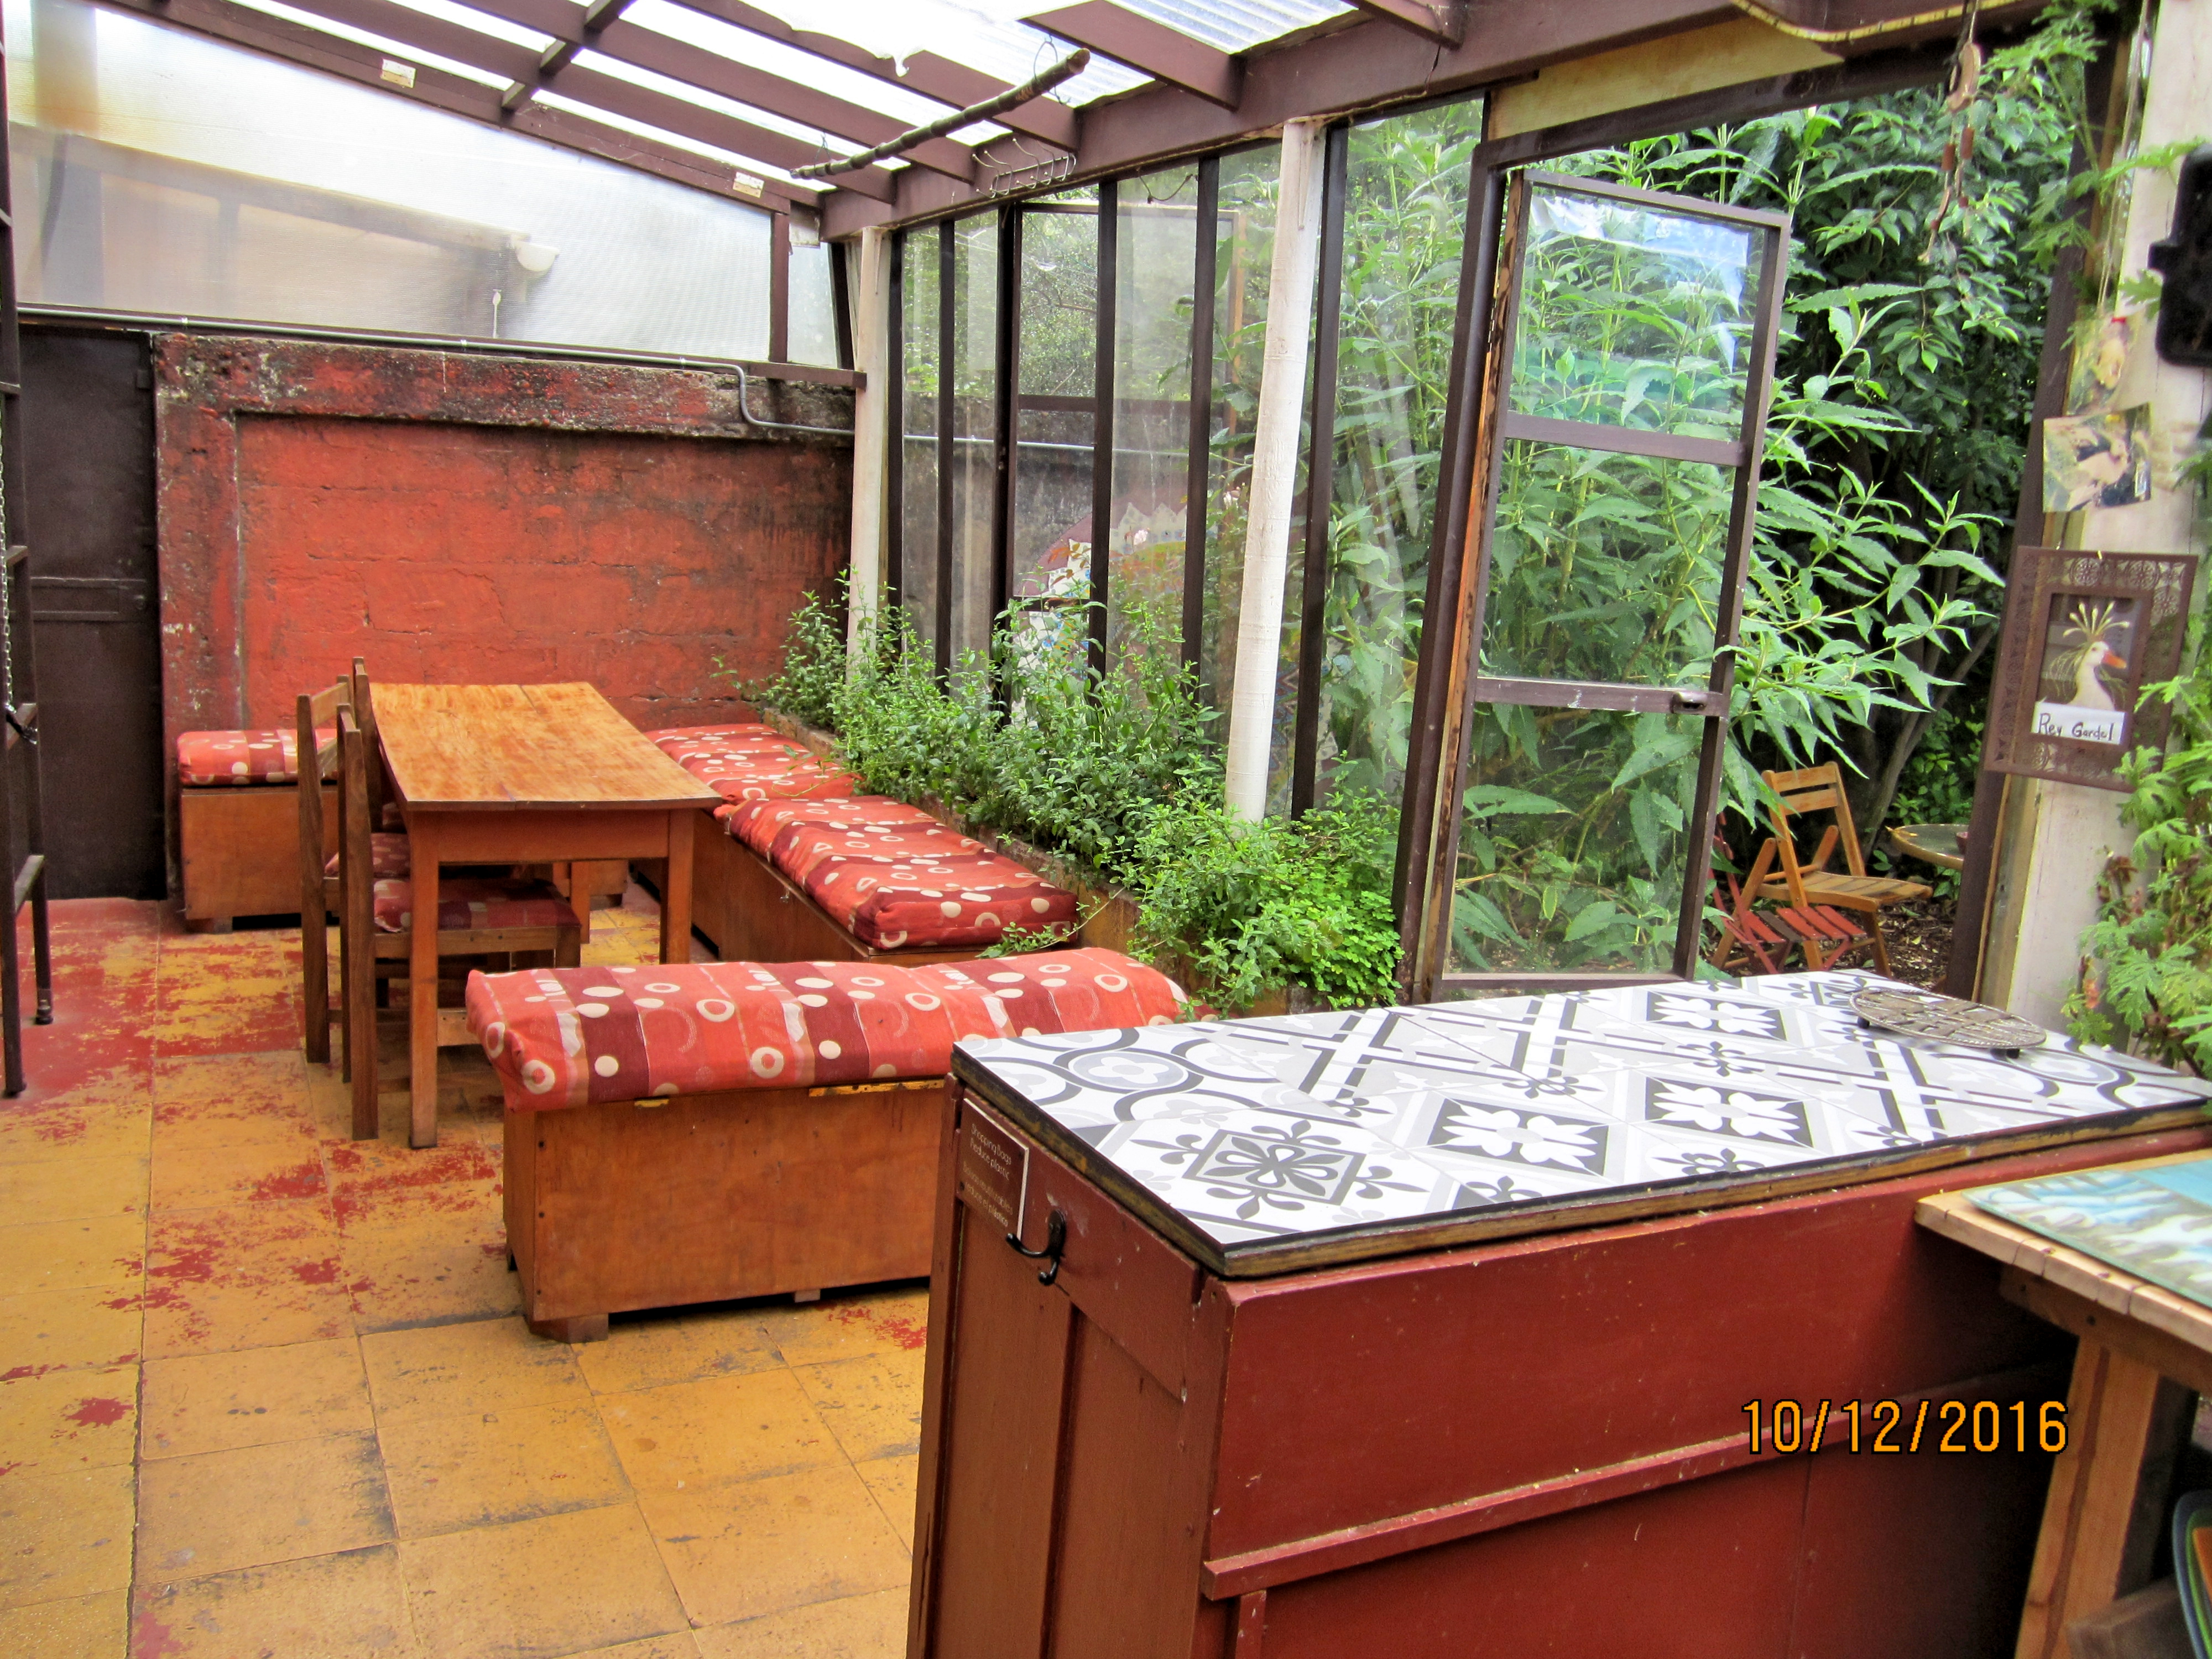 Airesbuenos Hostel & Permaculture